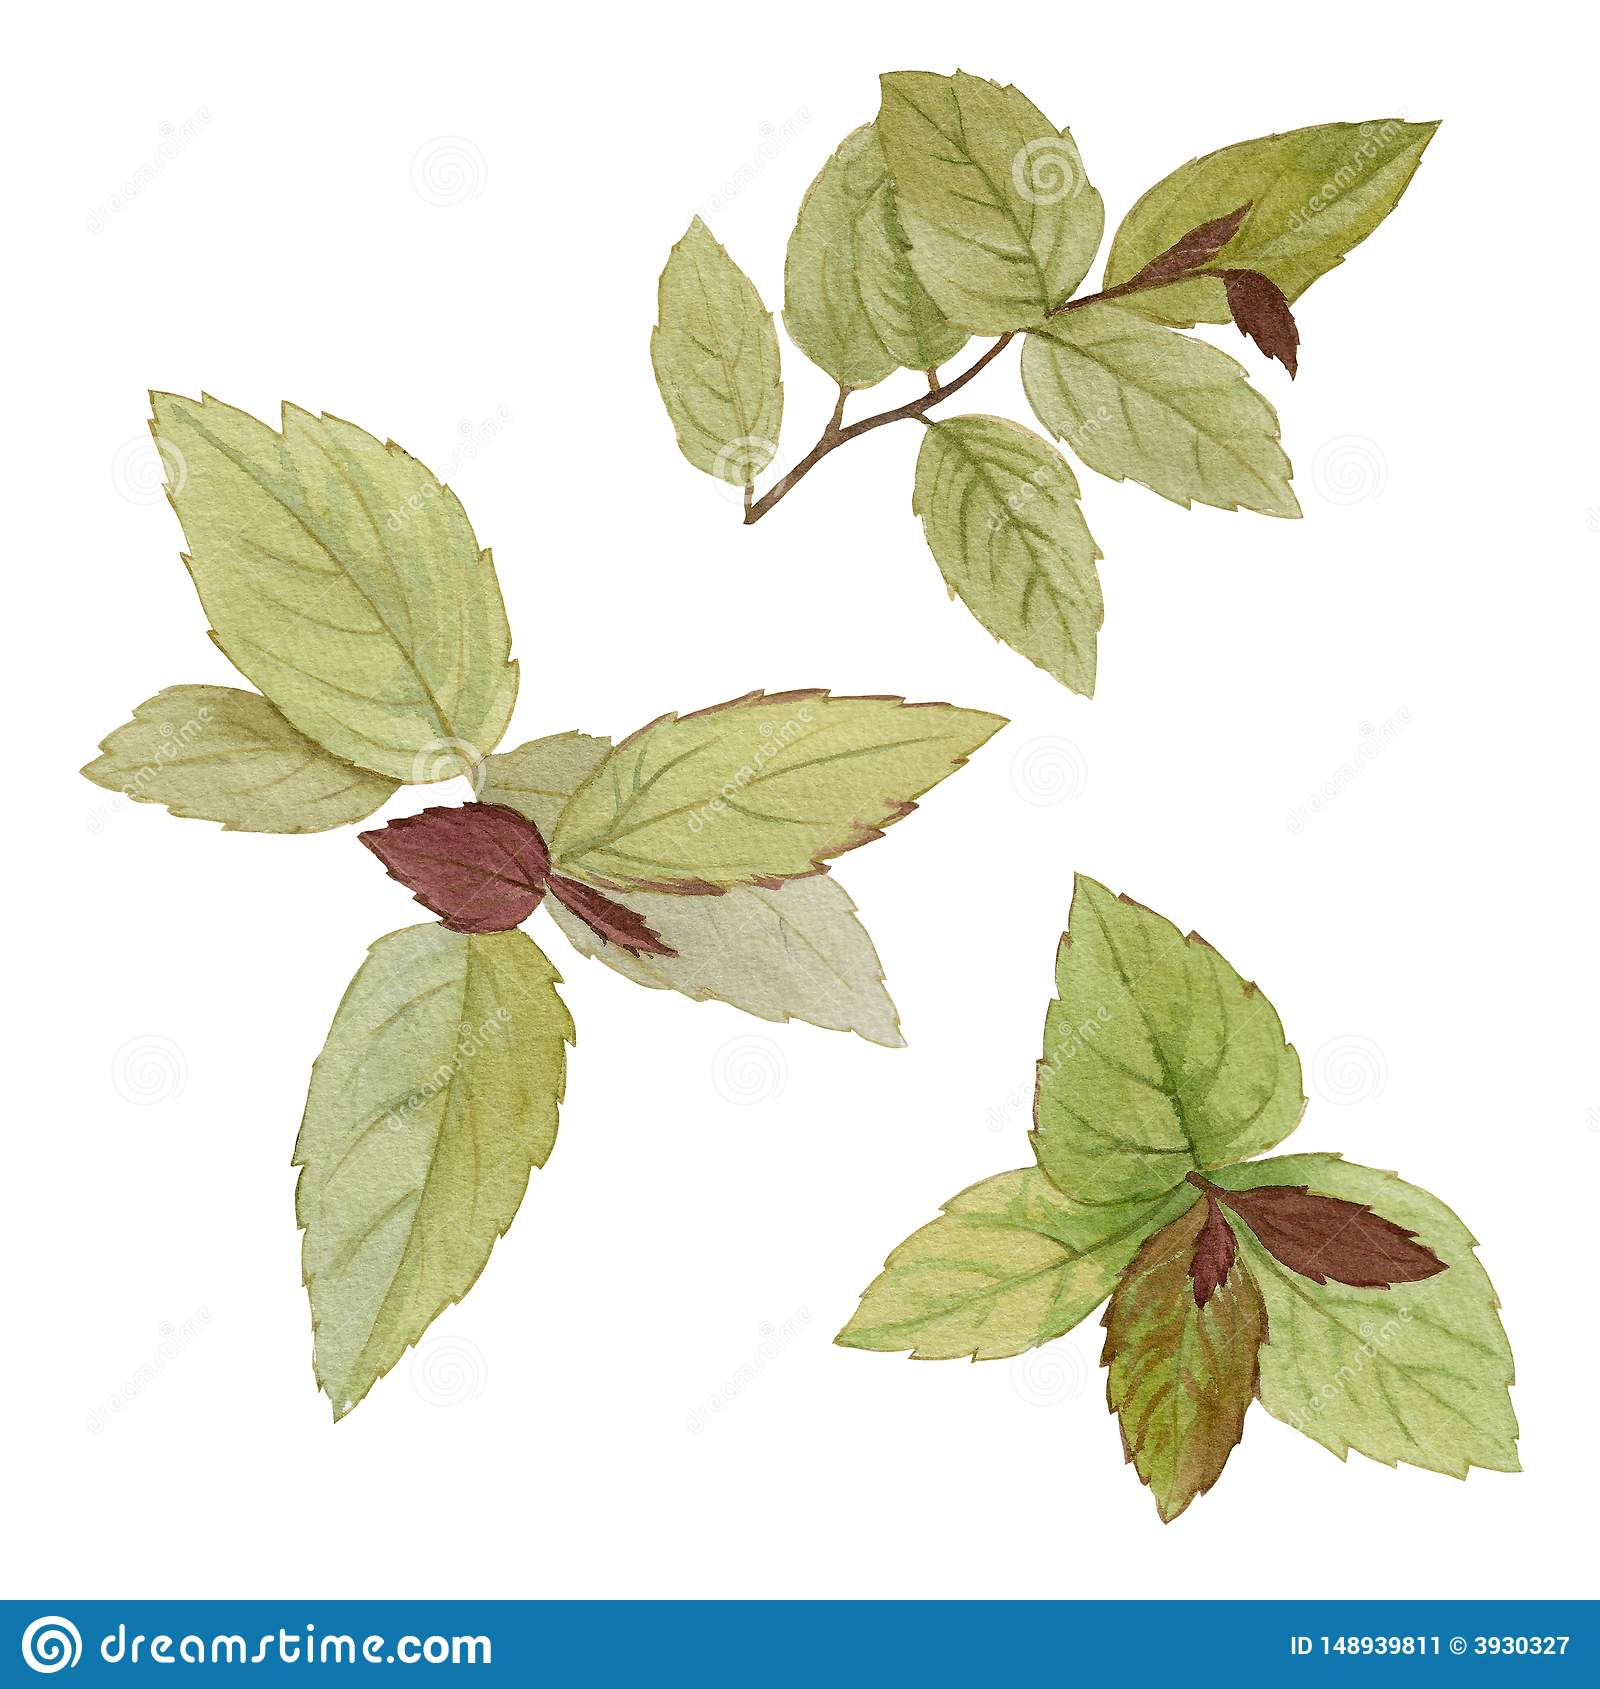 A set of leaves. Watercolor painting set of leaves on a white background. Hand draw watercolor illustration. Design element. Elega